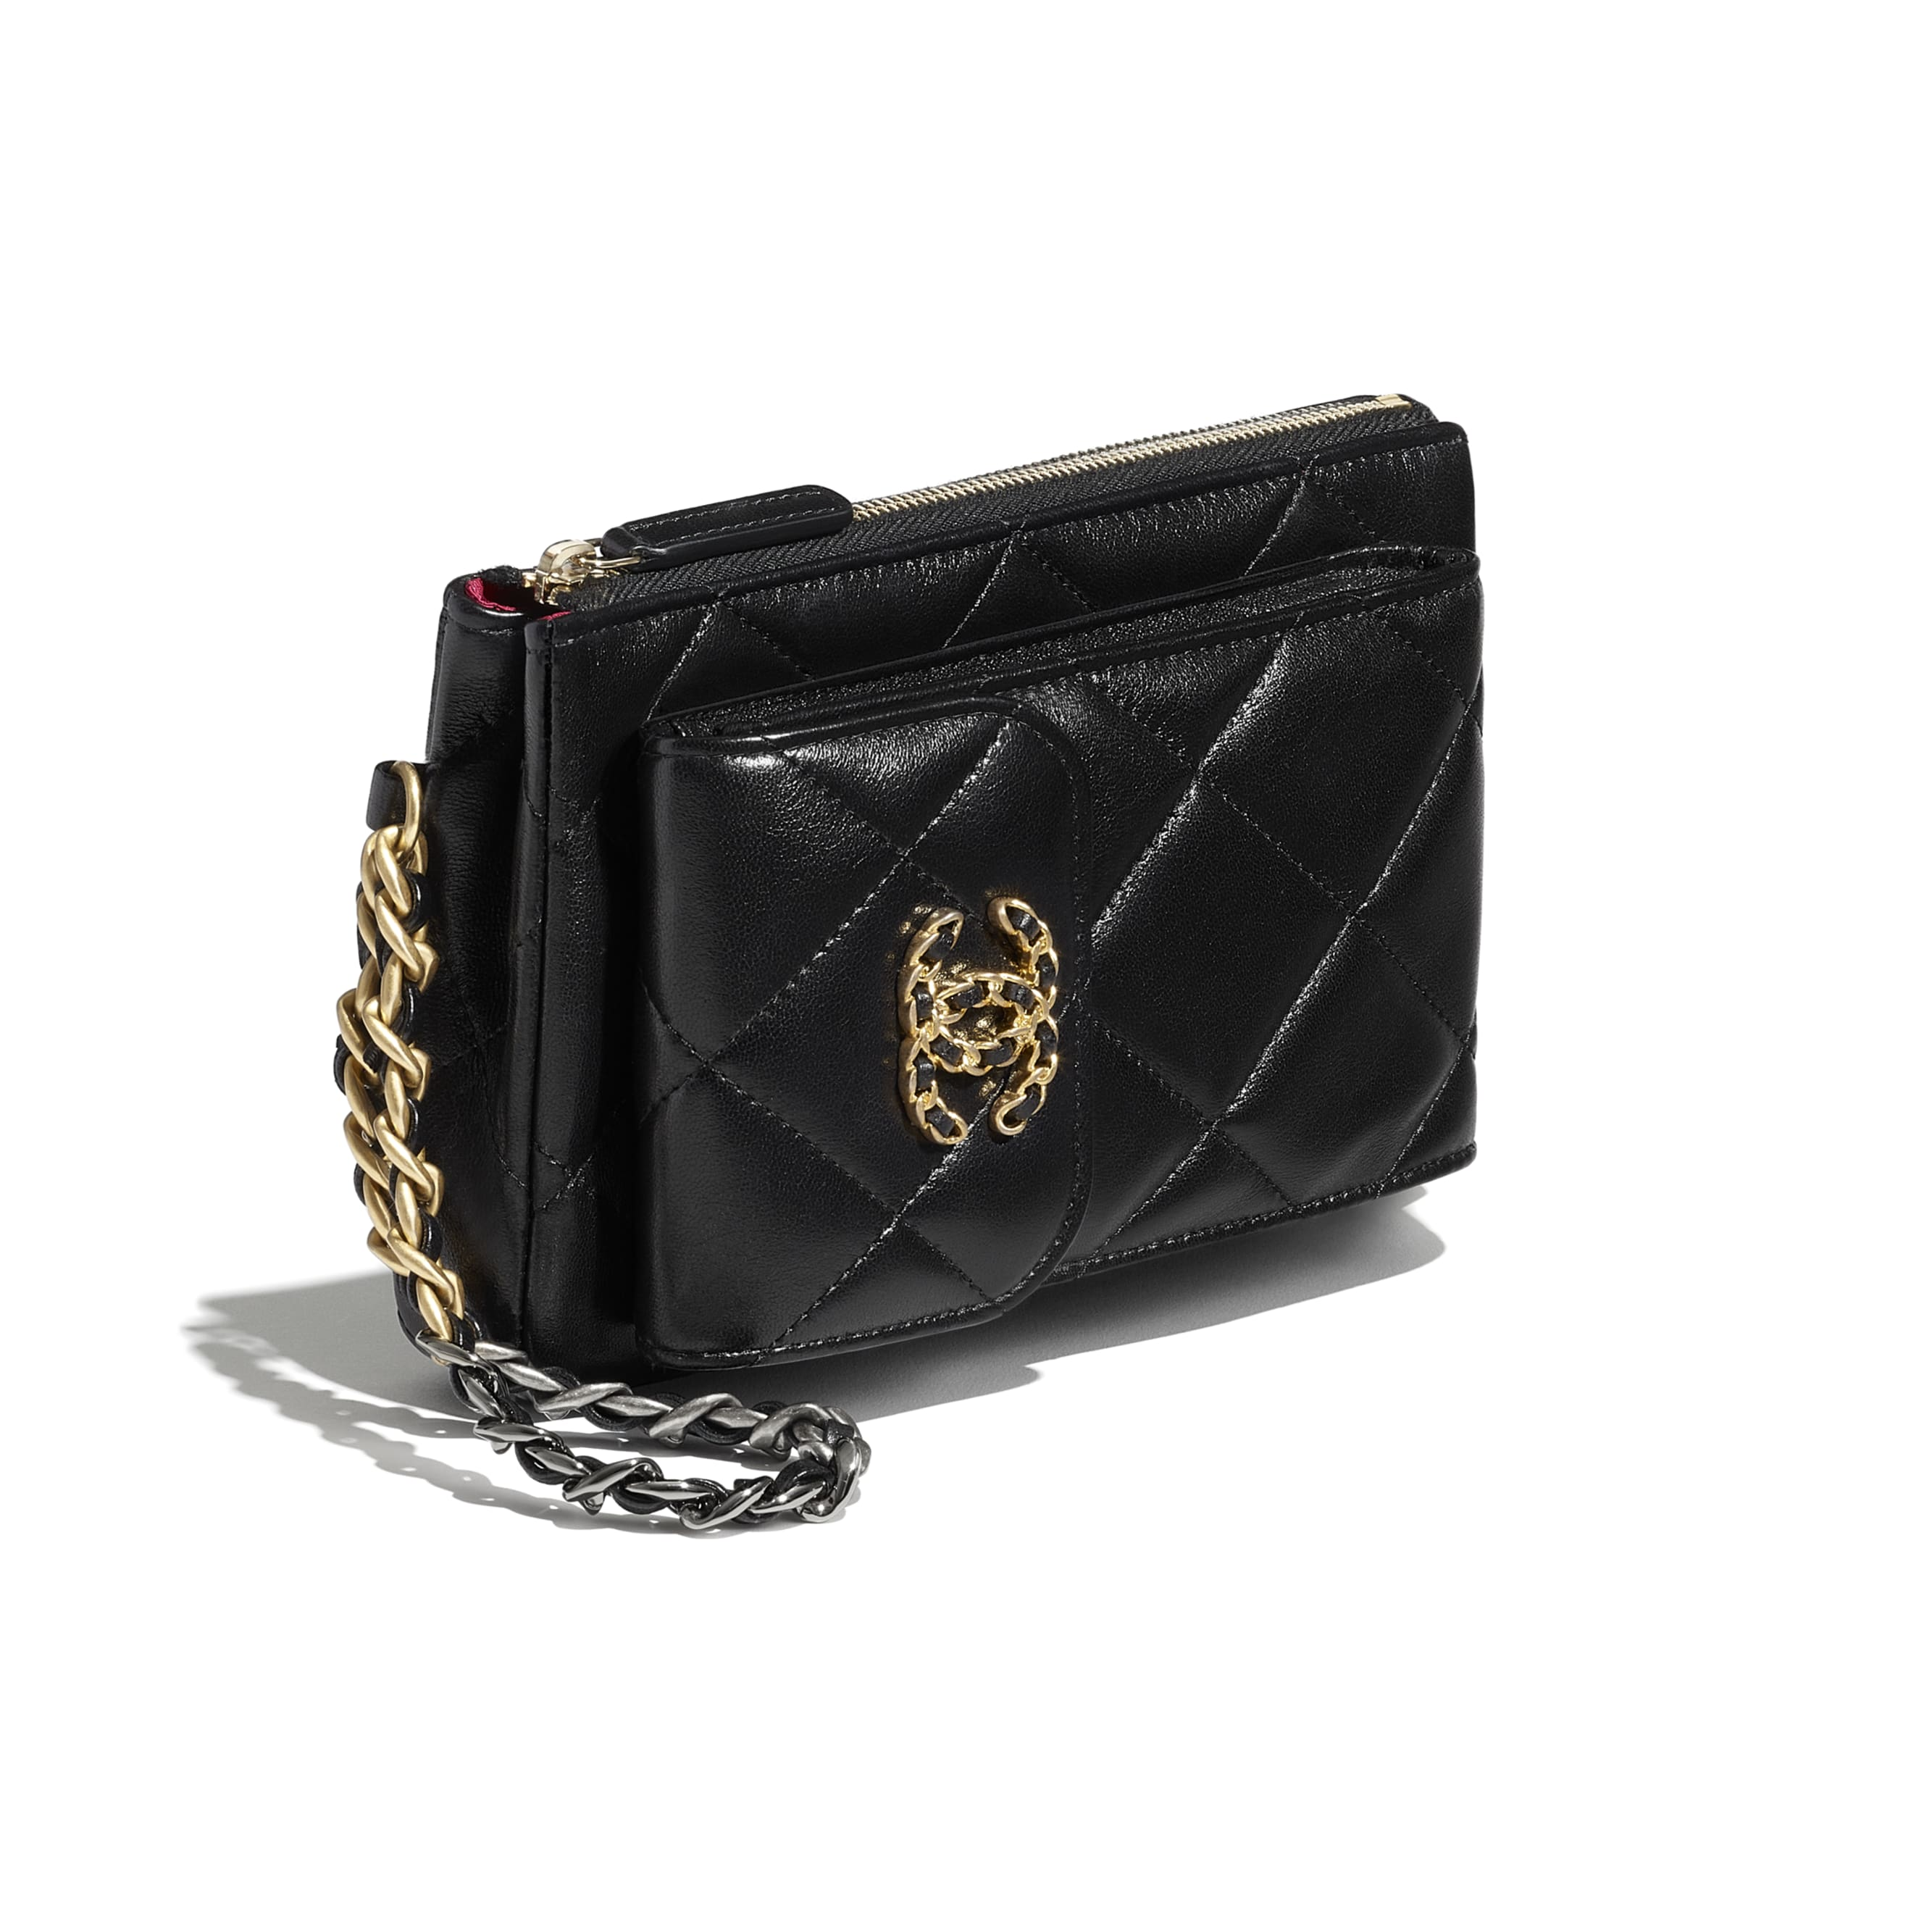 CHANEL 19 Pouch with Handle - Black - Lambskin, Gold-Tone, Silver-Tone & Ruthenium-Finish Metal - CHANEL - Extra view - see standard sized version